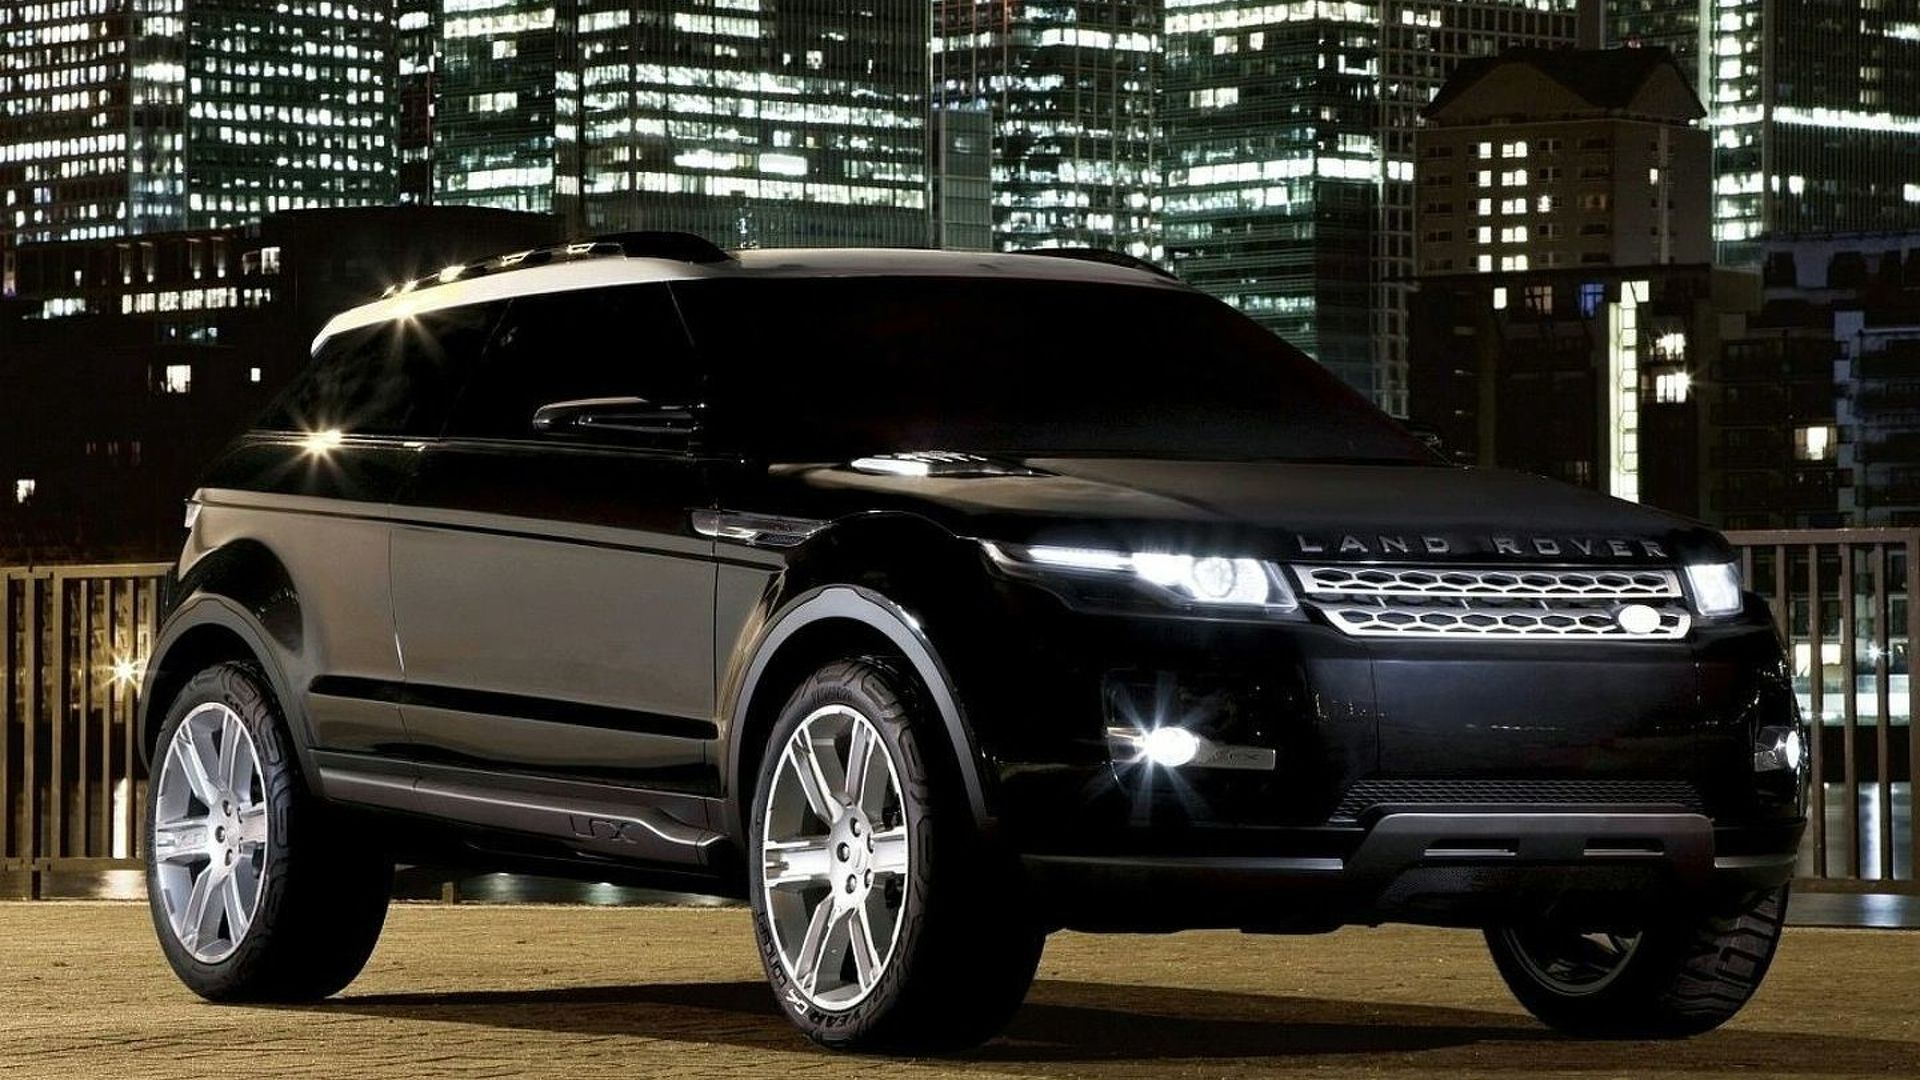 Land Rover Range Rover LRX Confirmed for Production